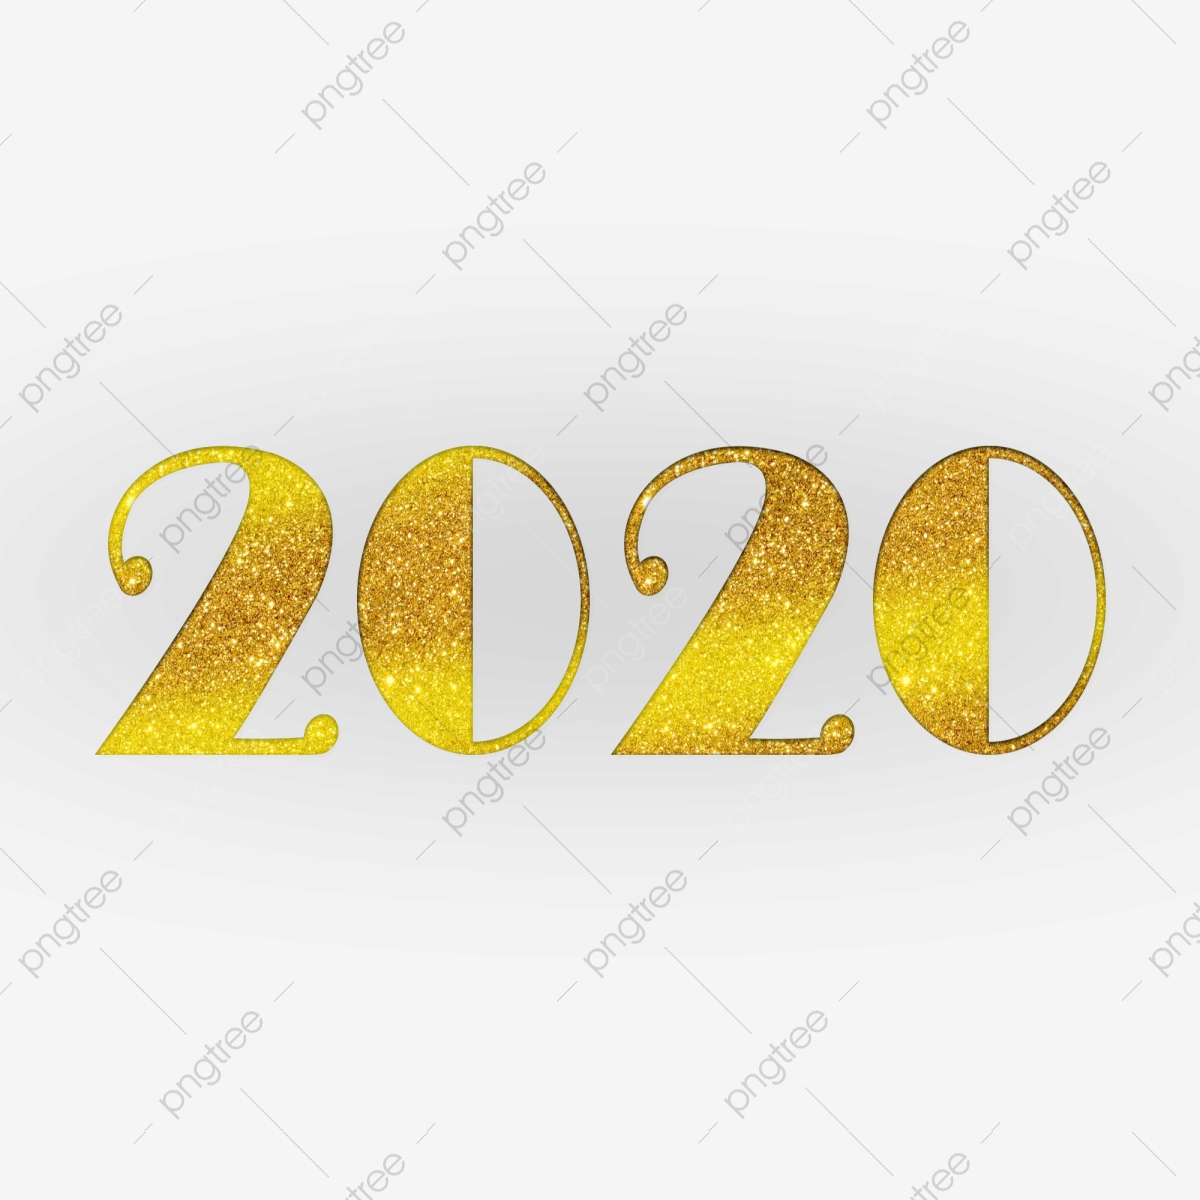 happy new year 2020 png images vector and psd files free download on pngtree https pngtree com freepng happy newyear 2020 4827955 html